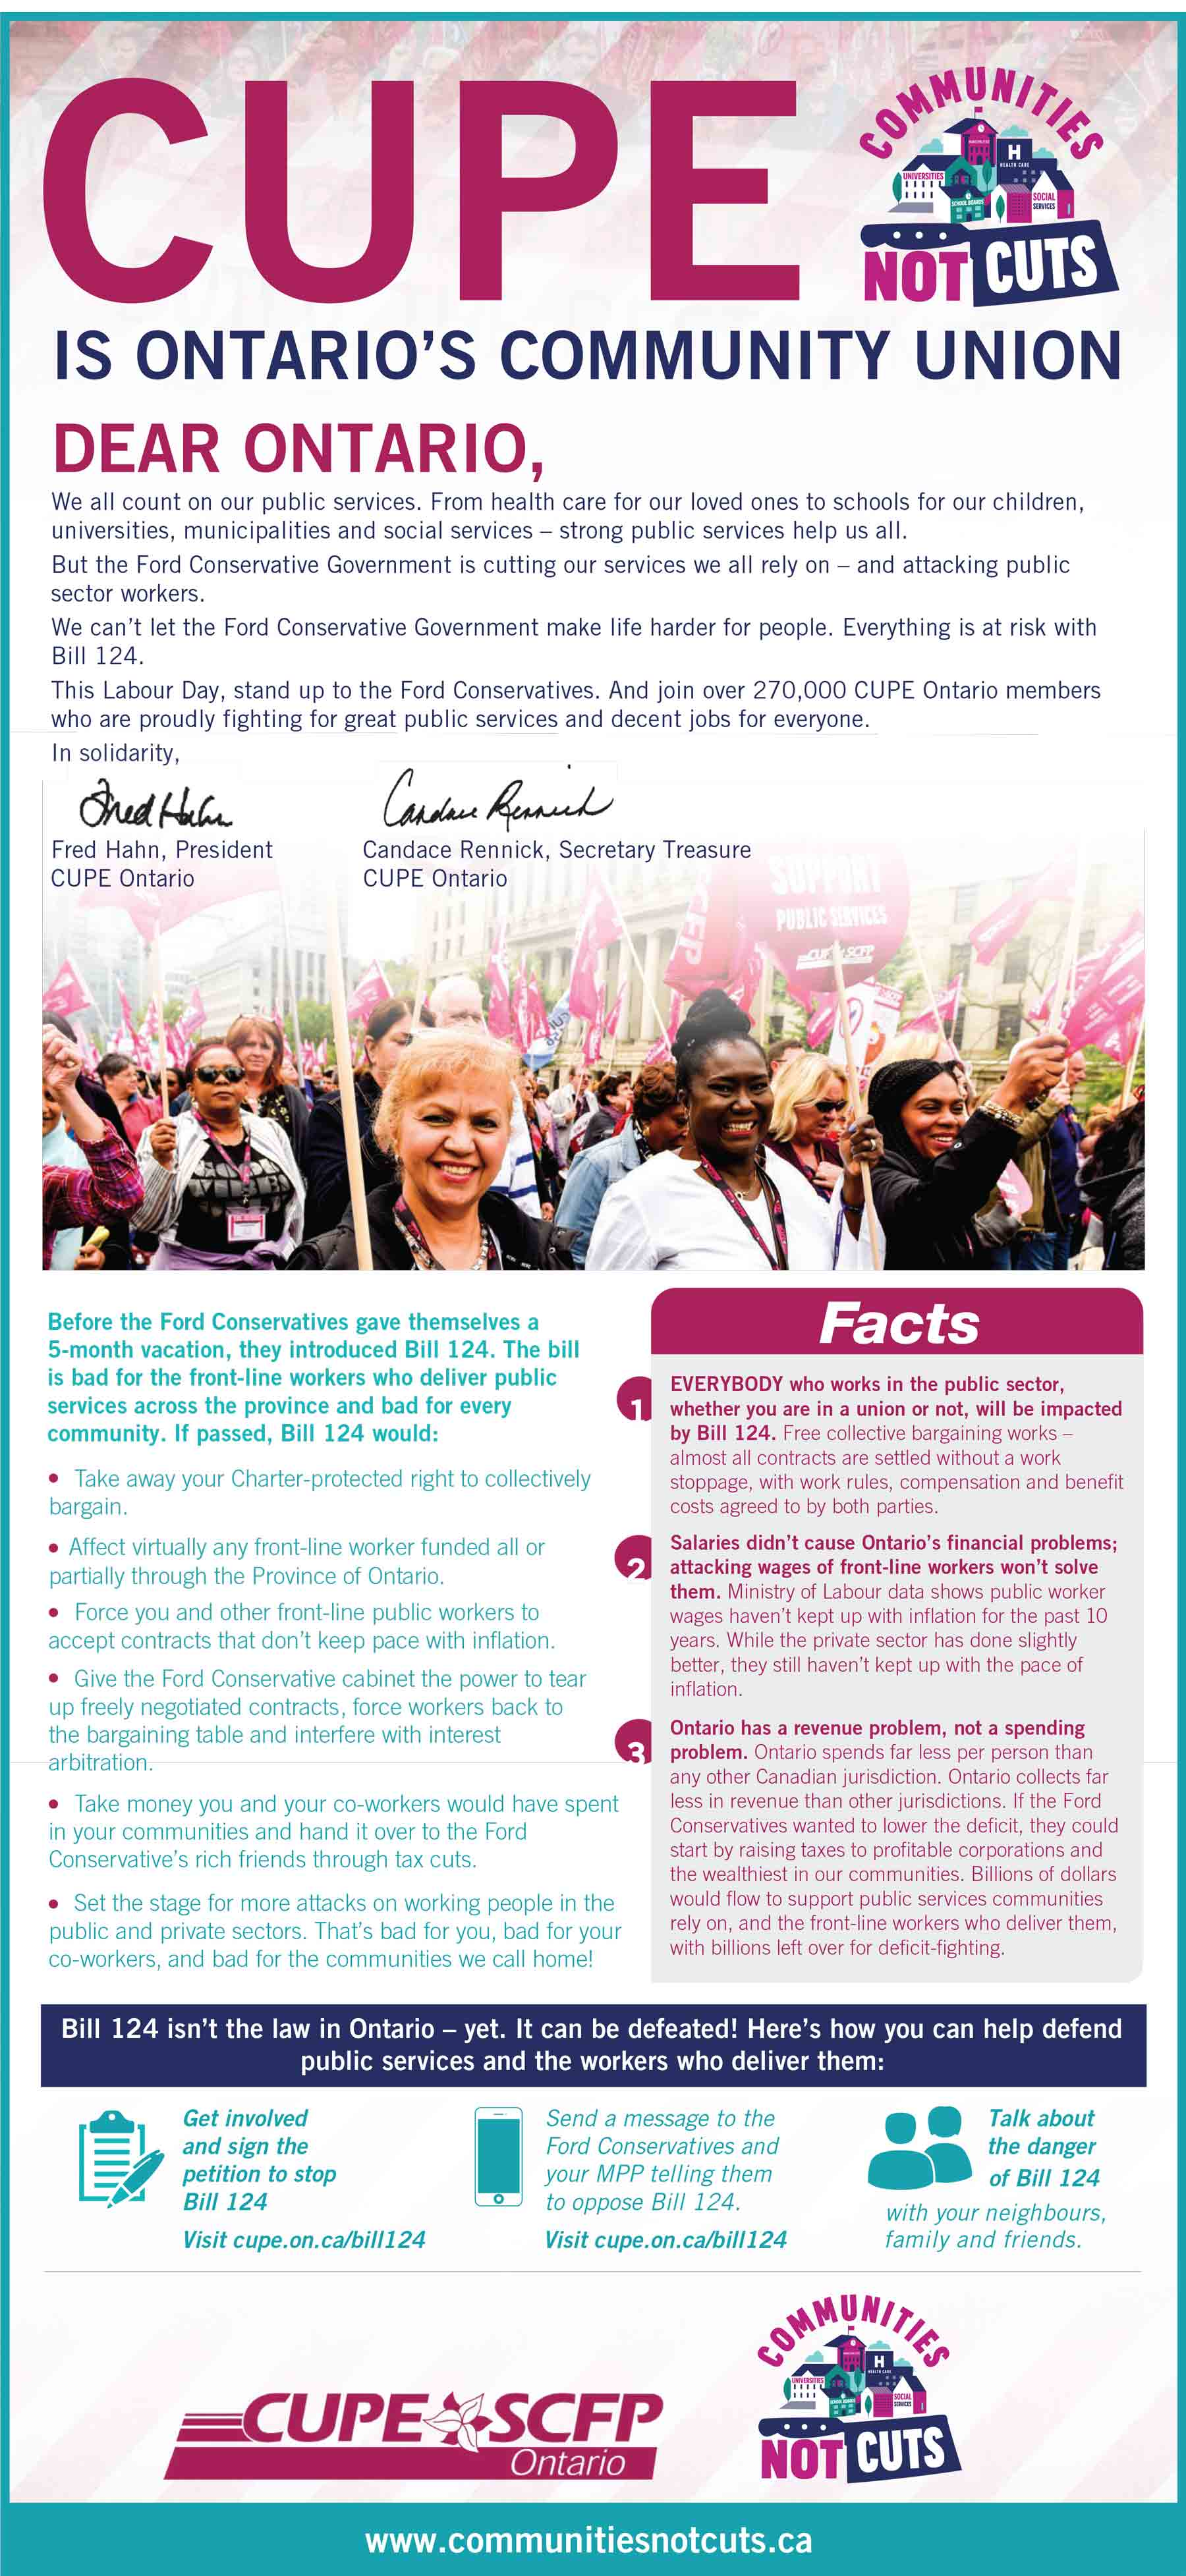 CUPE is Ontario's Community Union